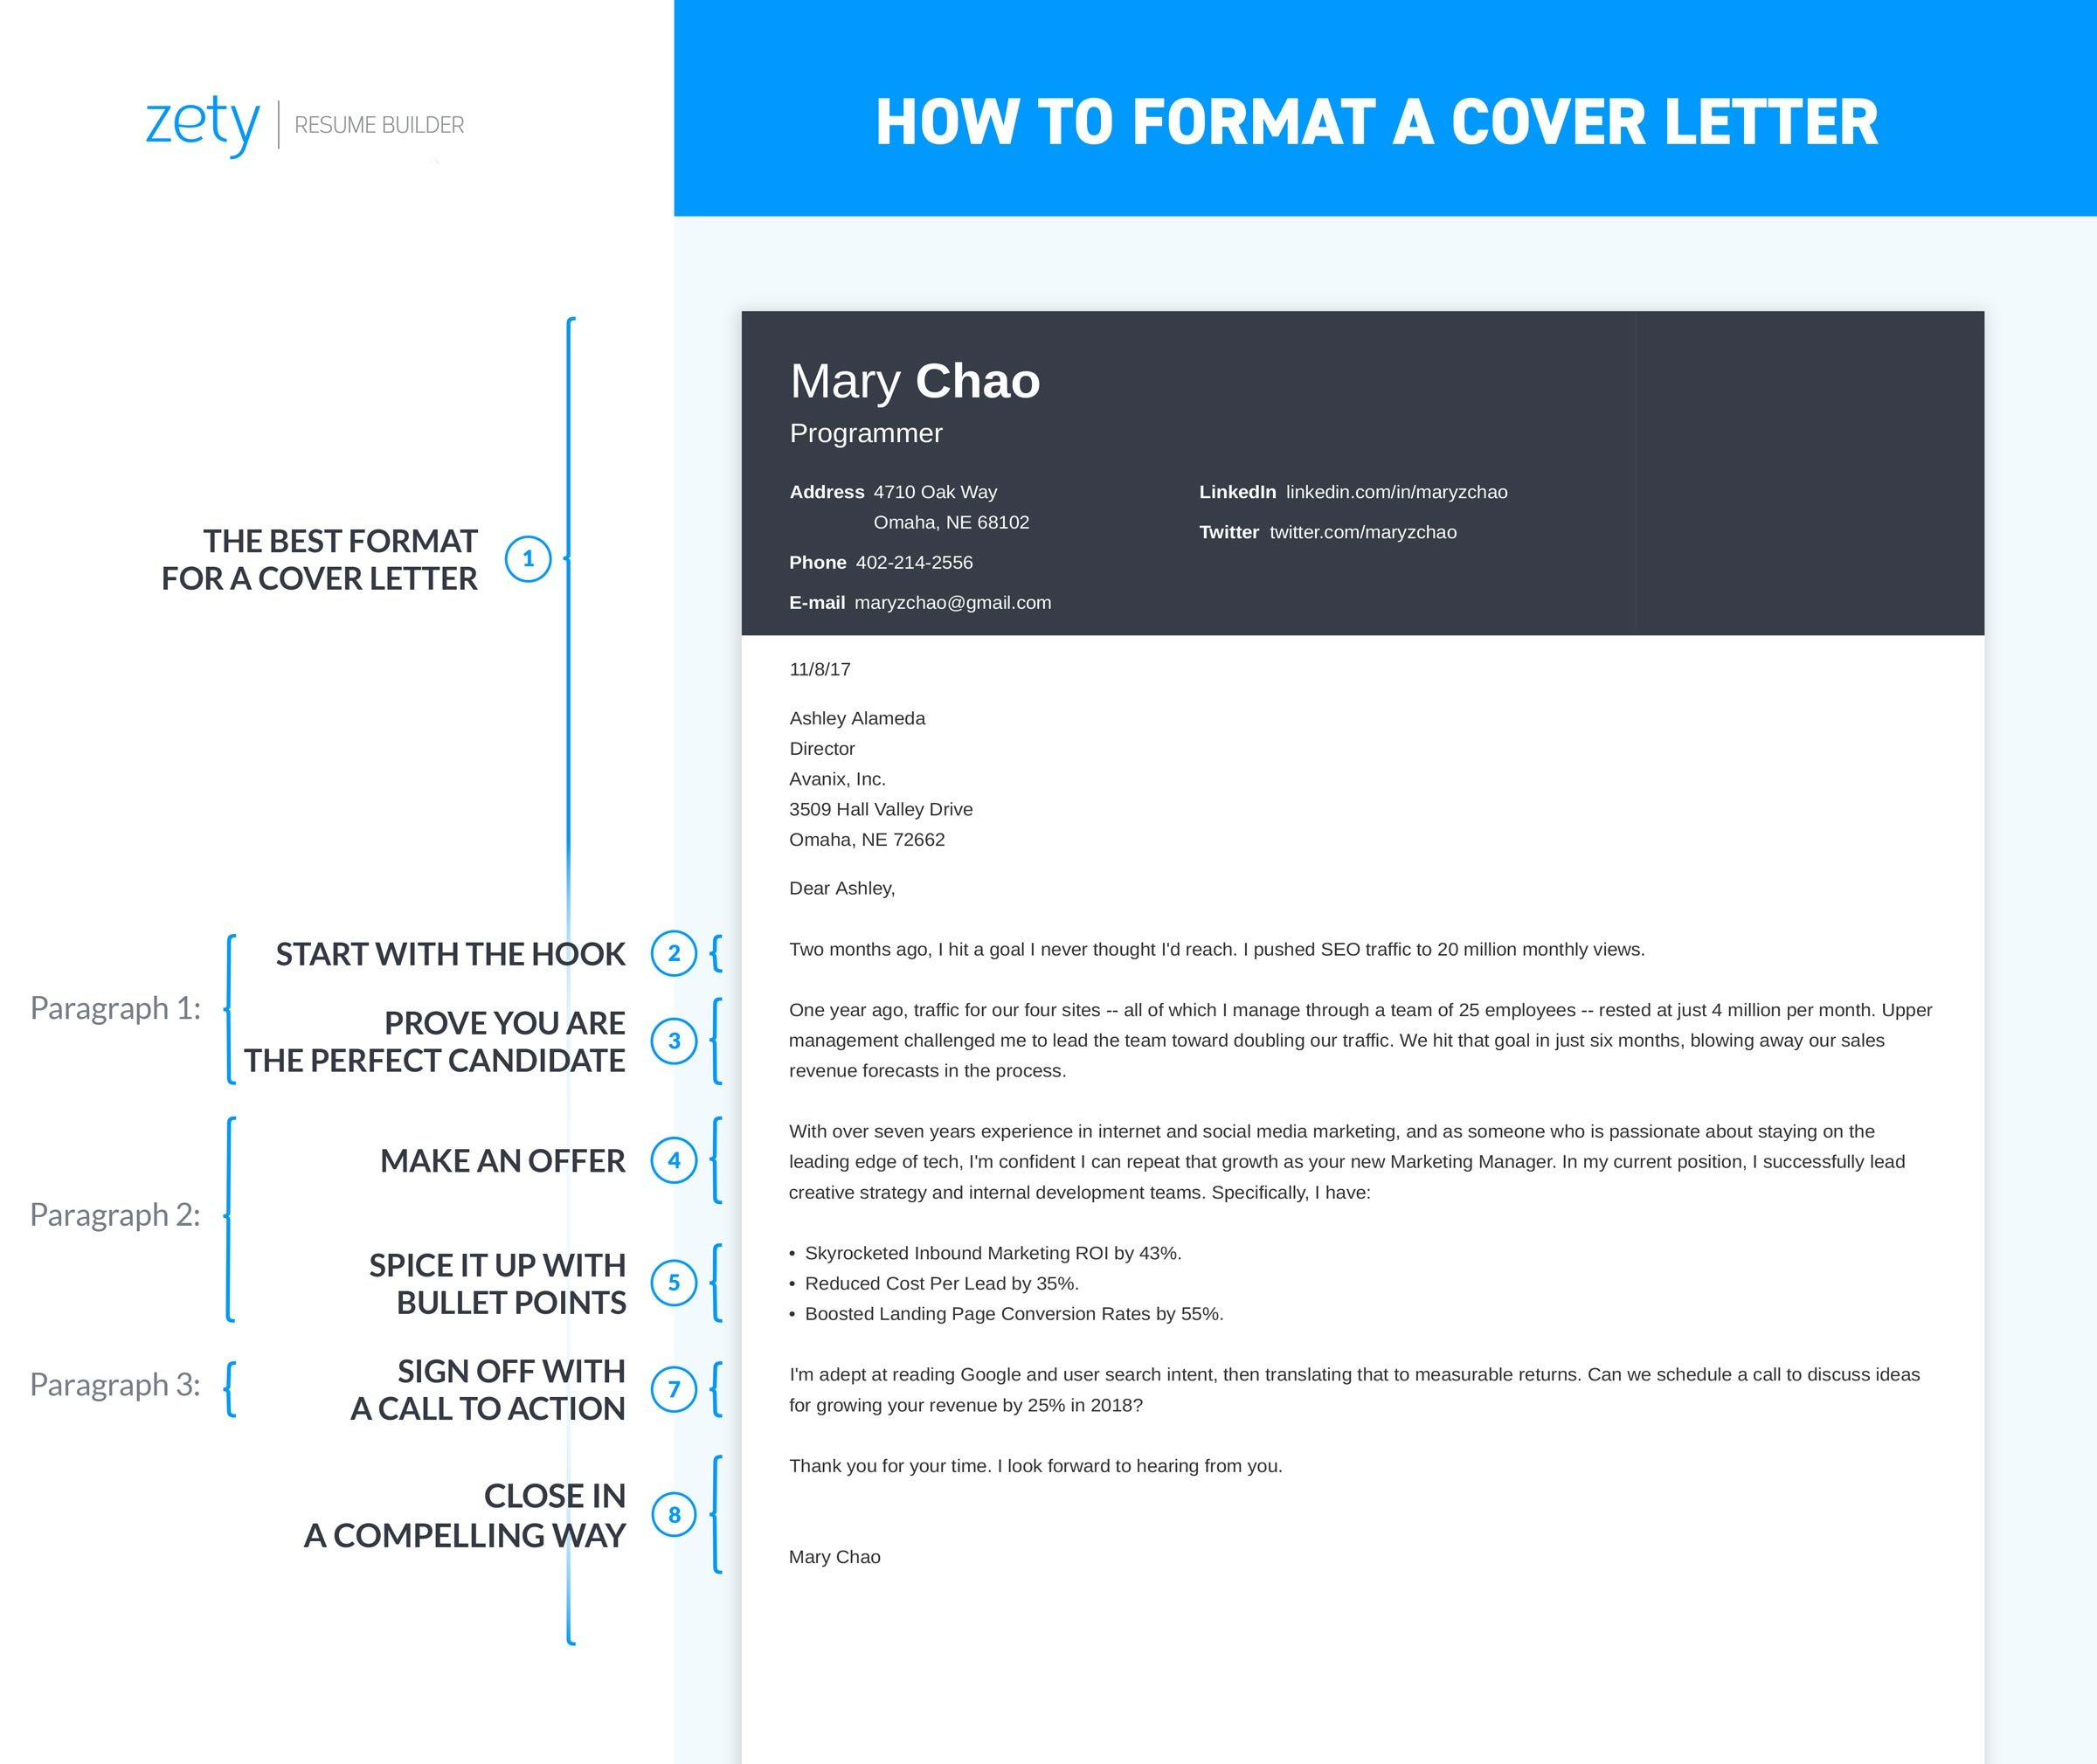 Cover Letter Format: Templates, Ready-to-Use Layouts, & 20+ ...